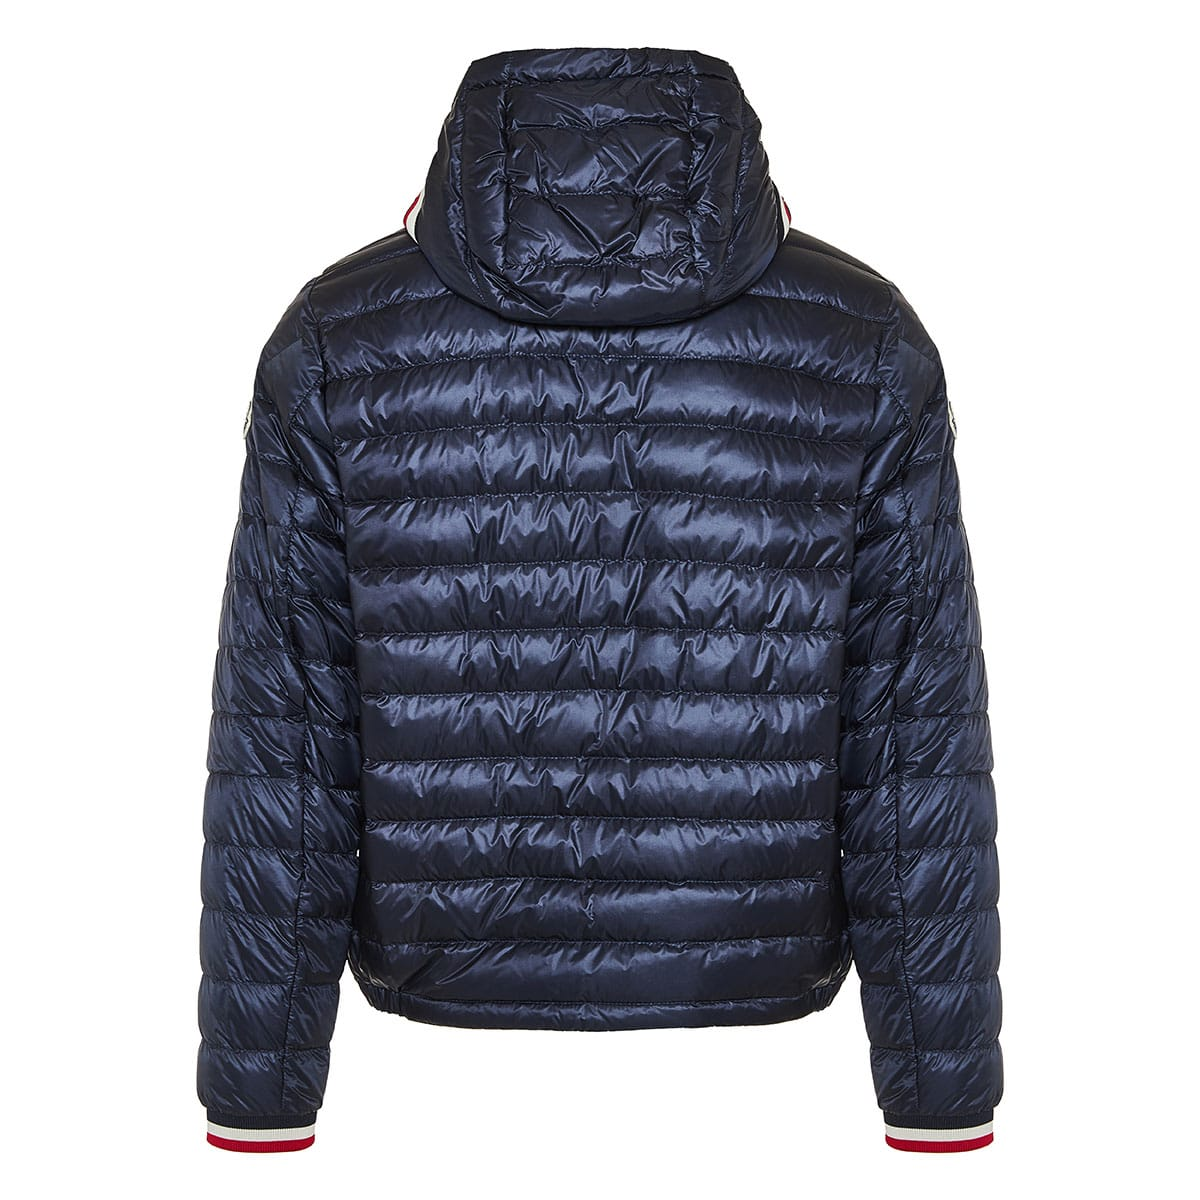 Giroux down quilted jacket